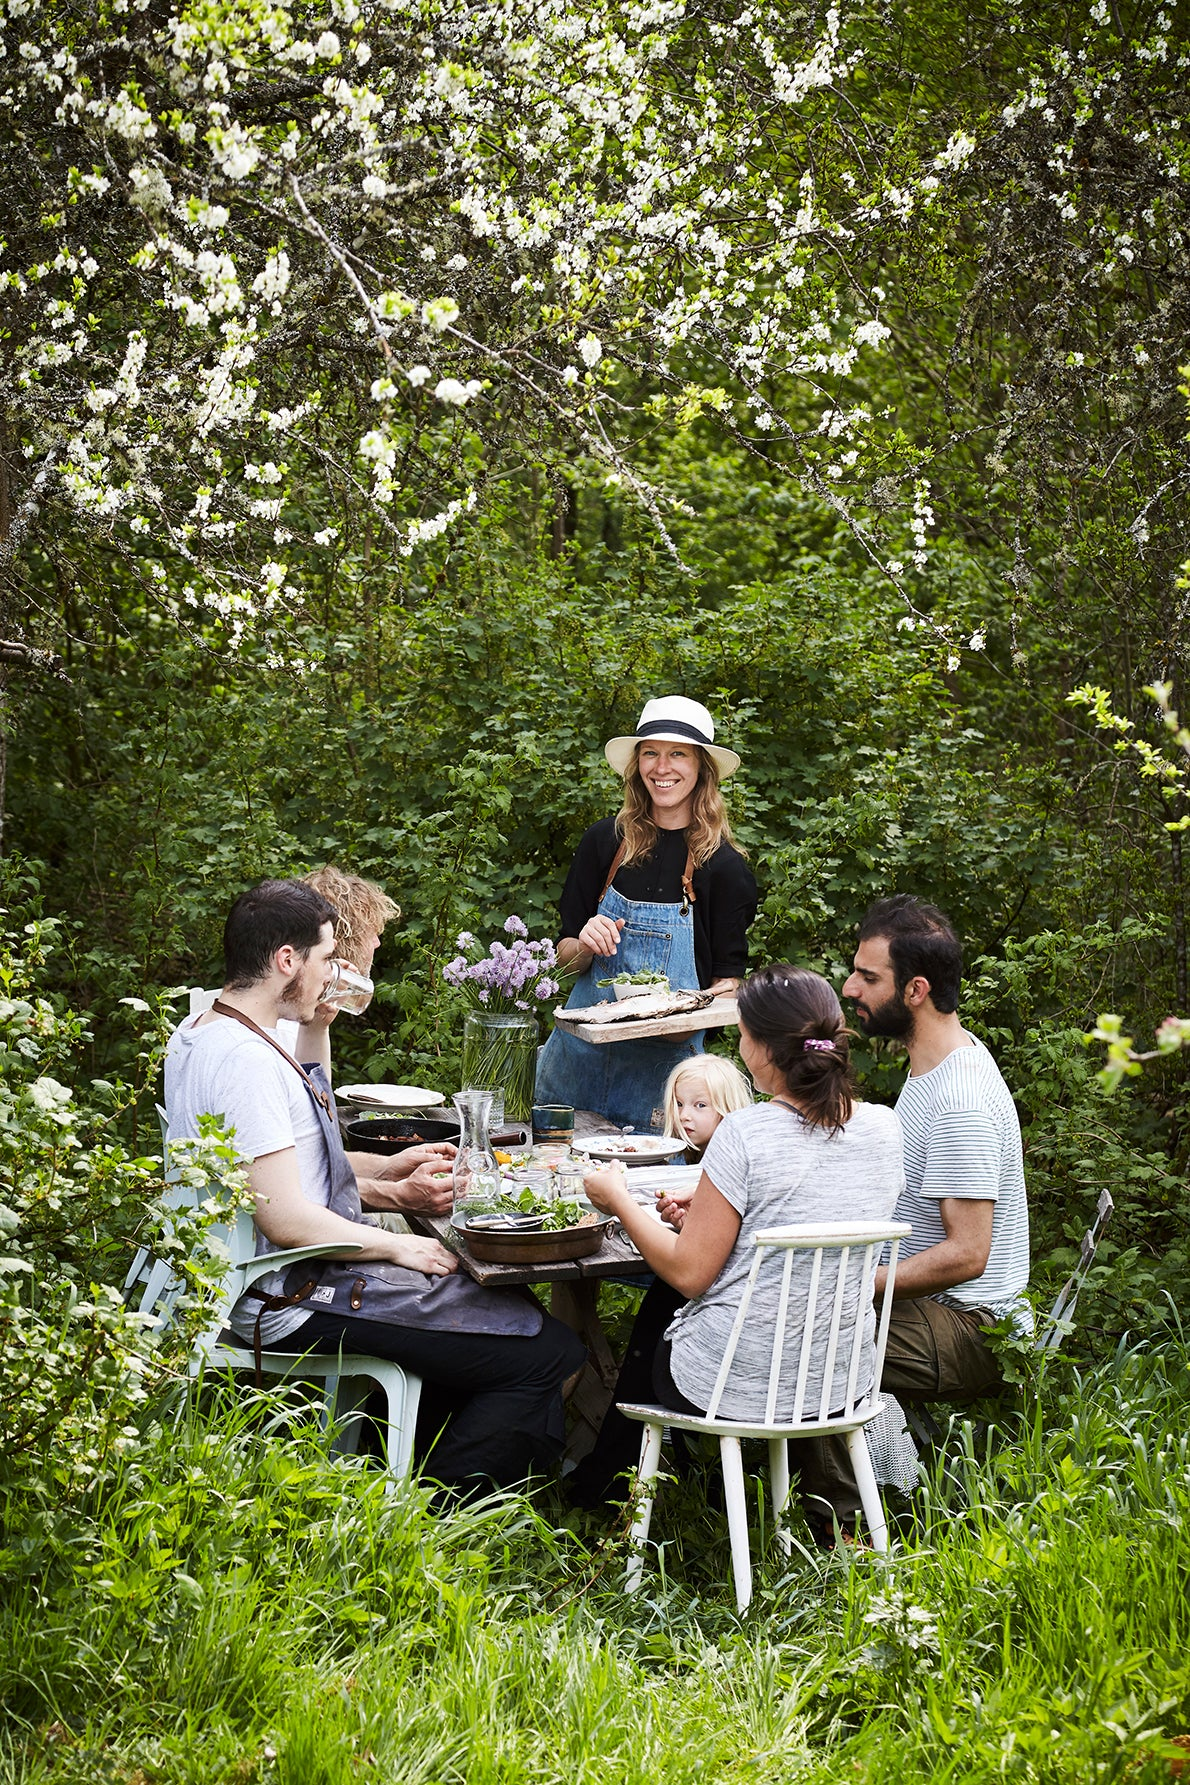 Finding Wellbeing in the Woods. Photo: Stine Christiansen, Farmlife by gestalten